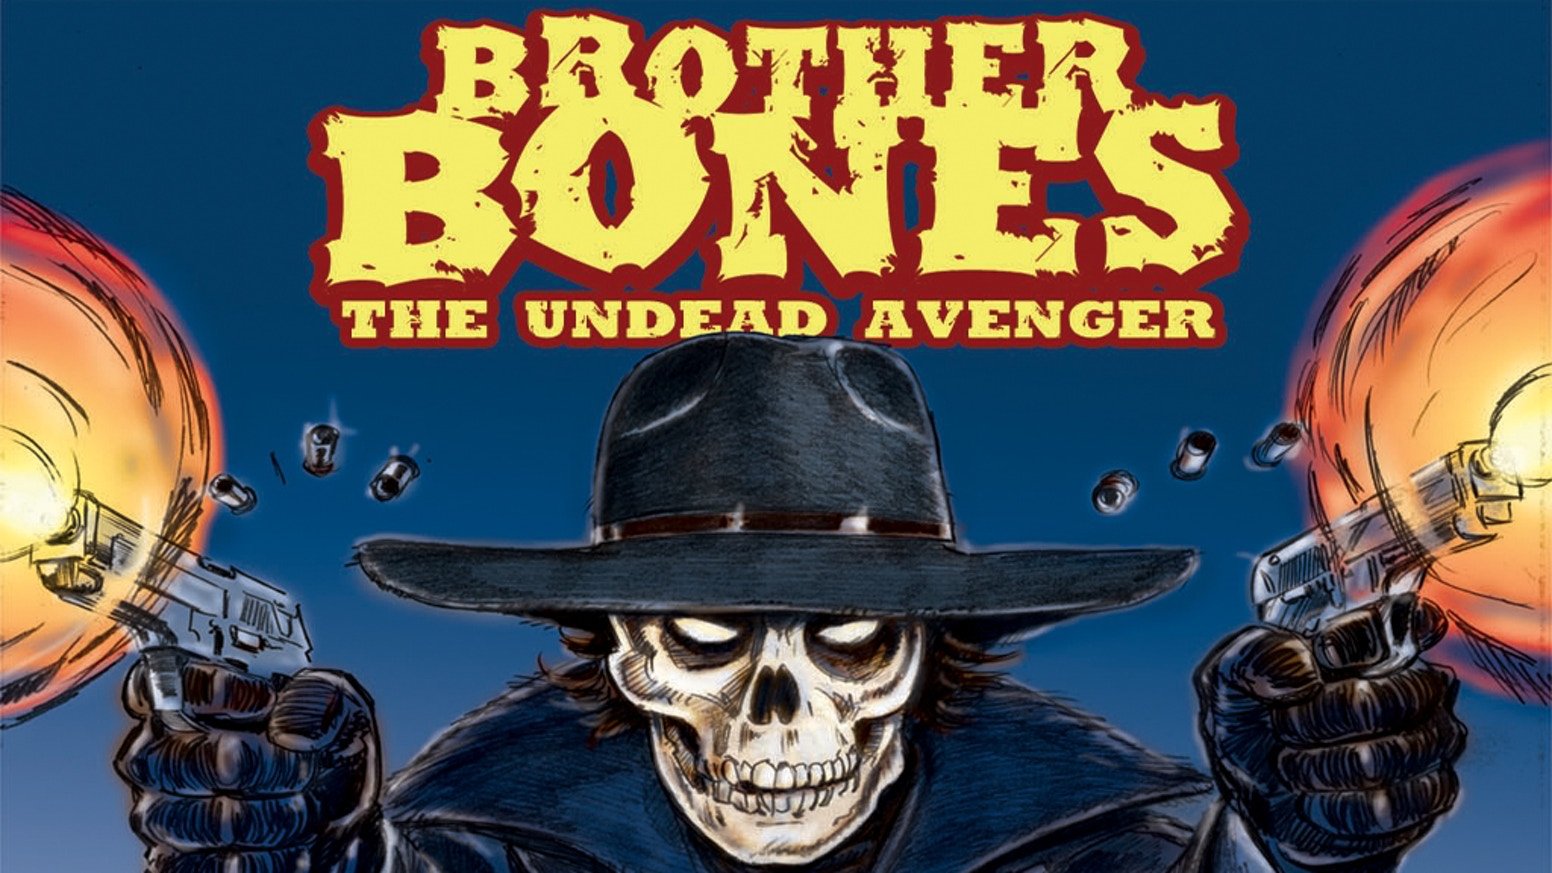 Erik Franklin talks Brother Bones The Undead Avenger and bringing the character to film.